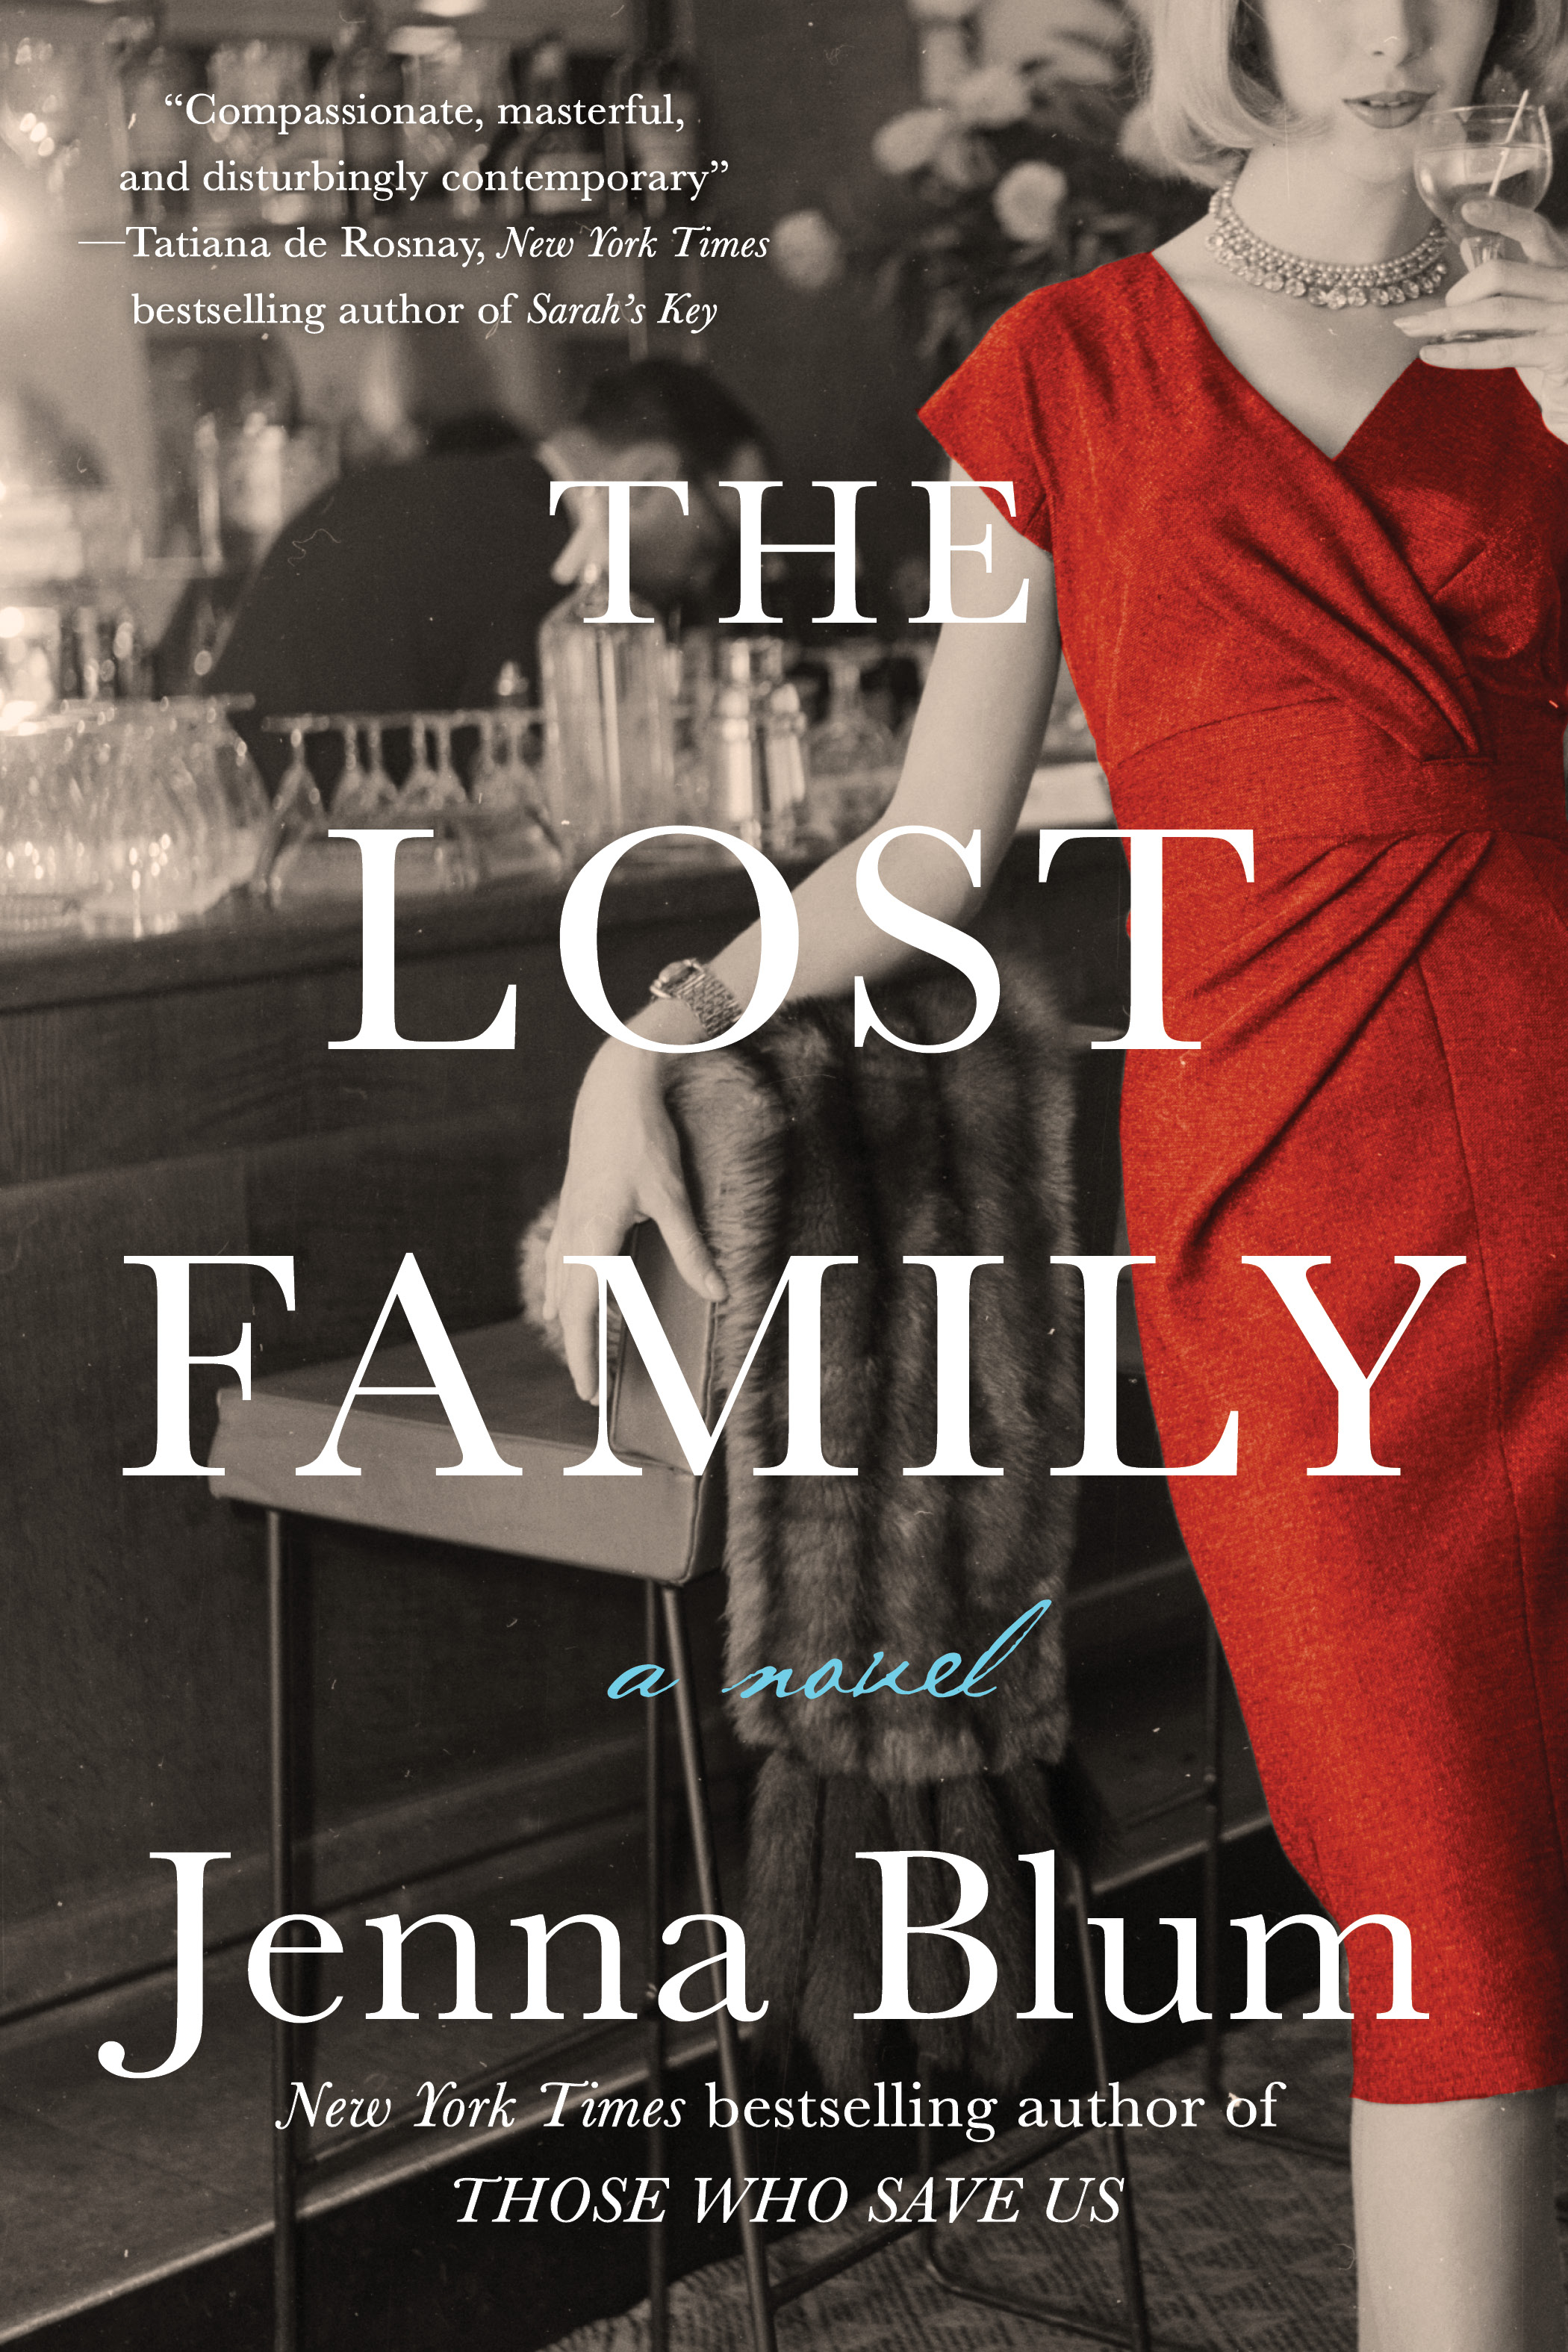 PUBLICATION DAY!📚🚀🎉🎊 - It's here! Publication day for The Lost Family has finally arrived. The novel is available NOW wherever fine books are sold. CinCin and happy reading!